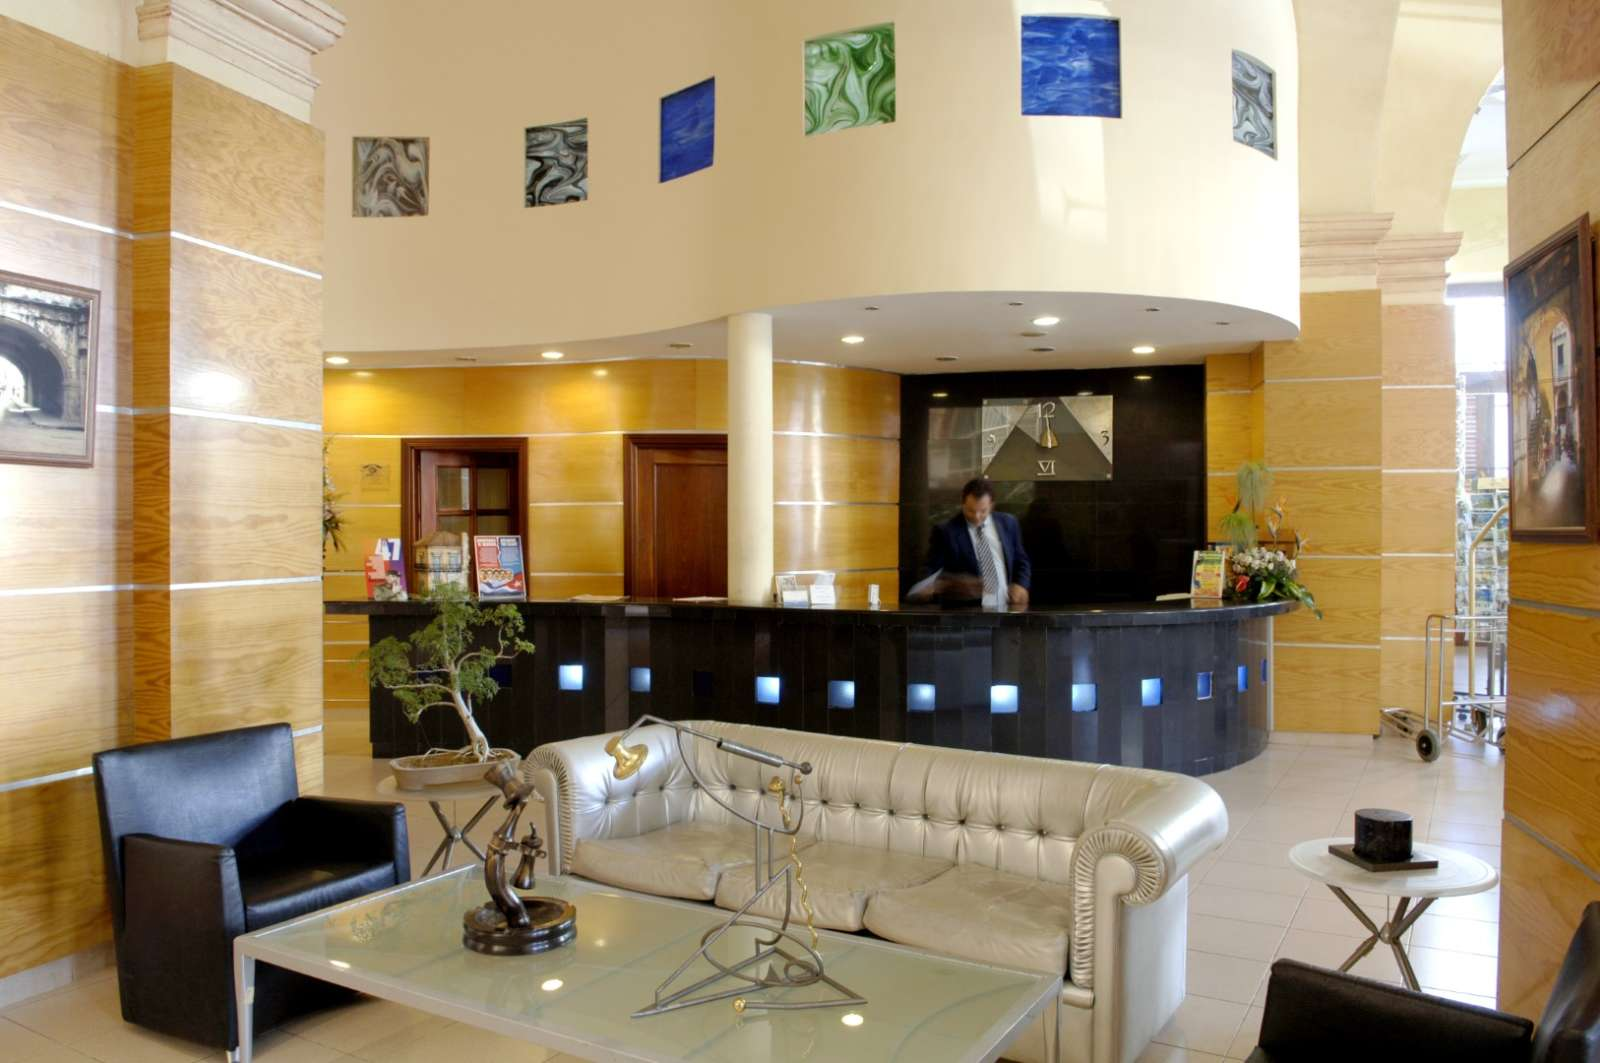 Reception of the Hotel Telegrafo in Havana, Cuba